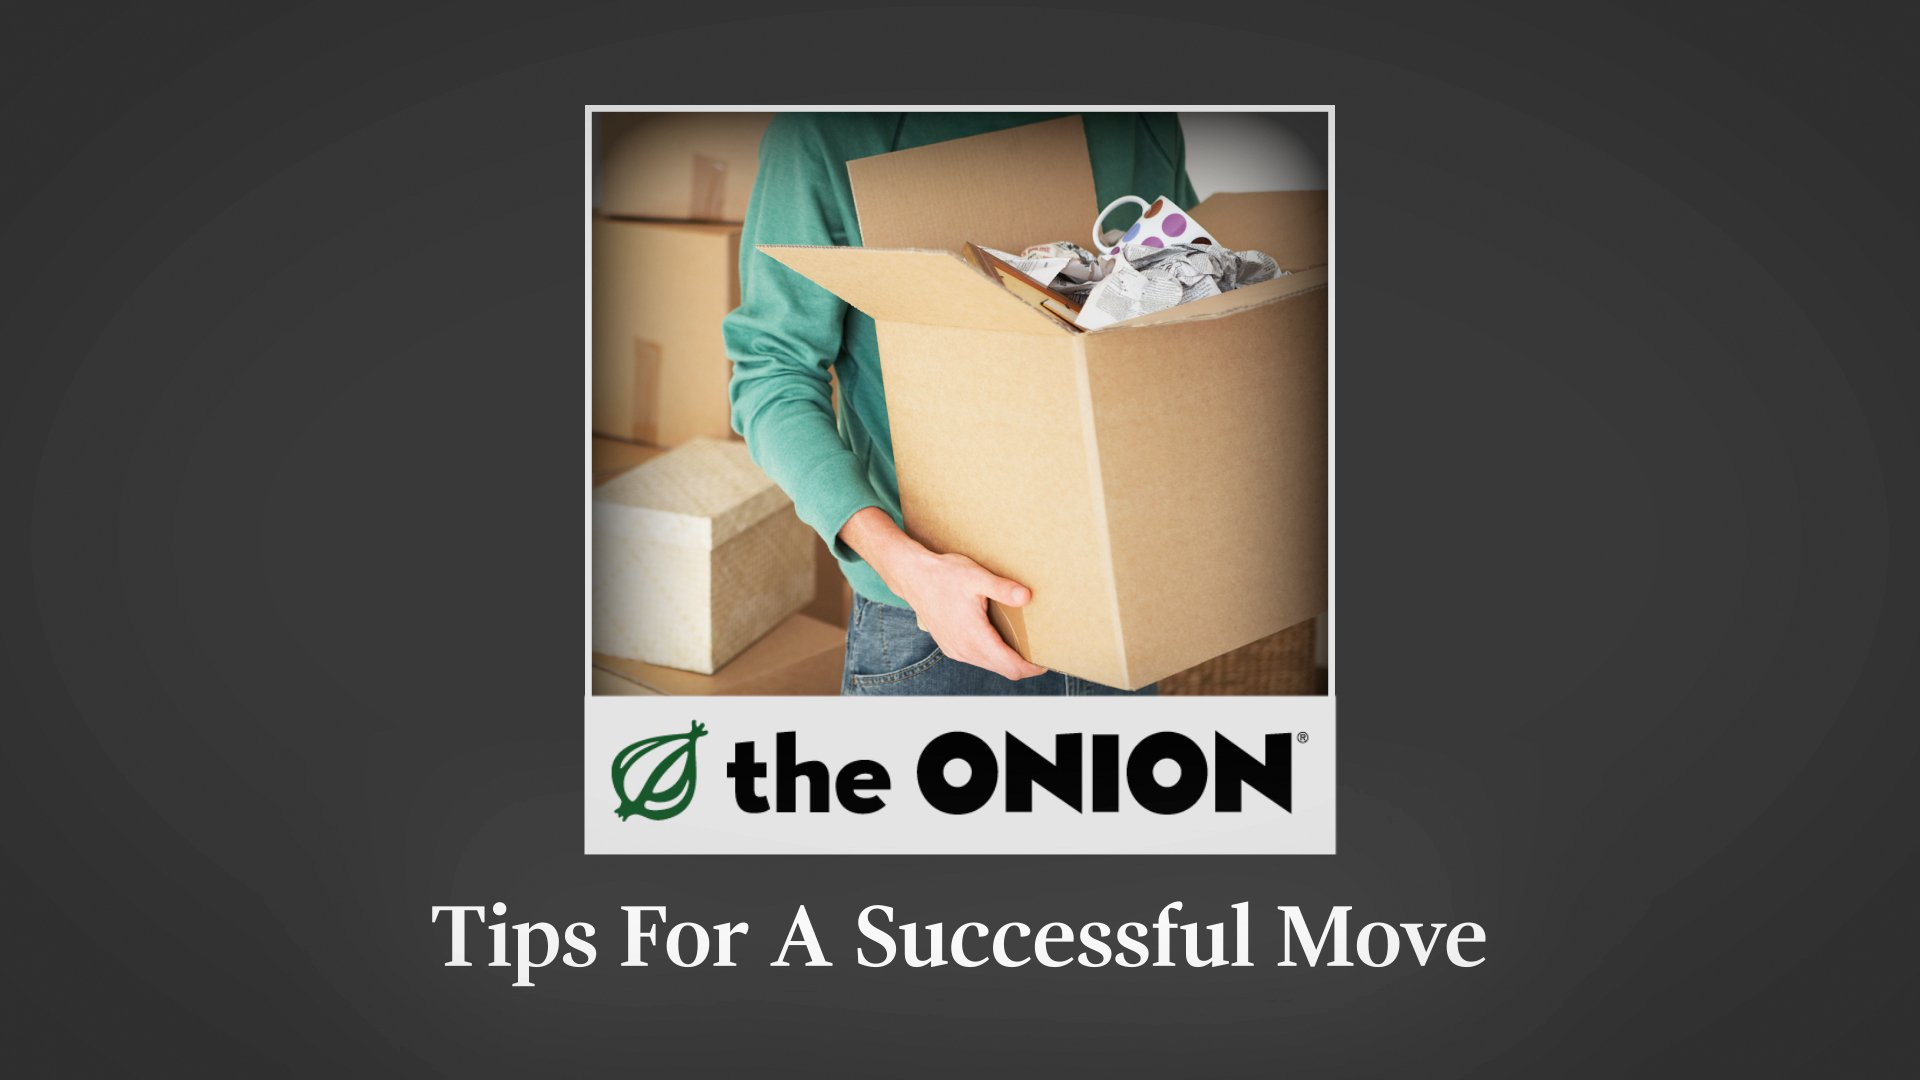 Tips For A Successful Move https://t.co/8MYOaSG558